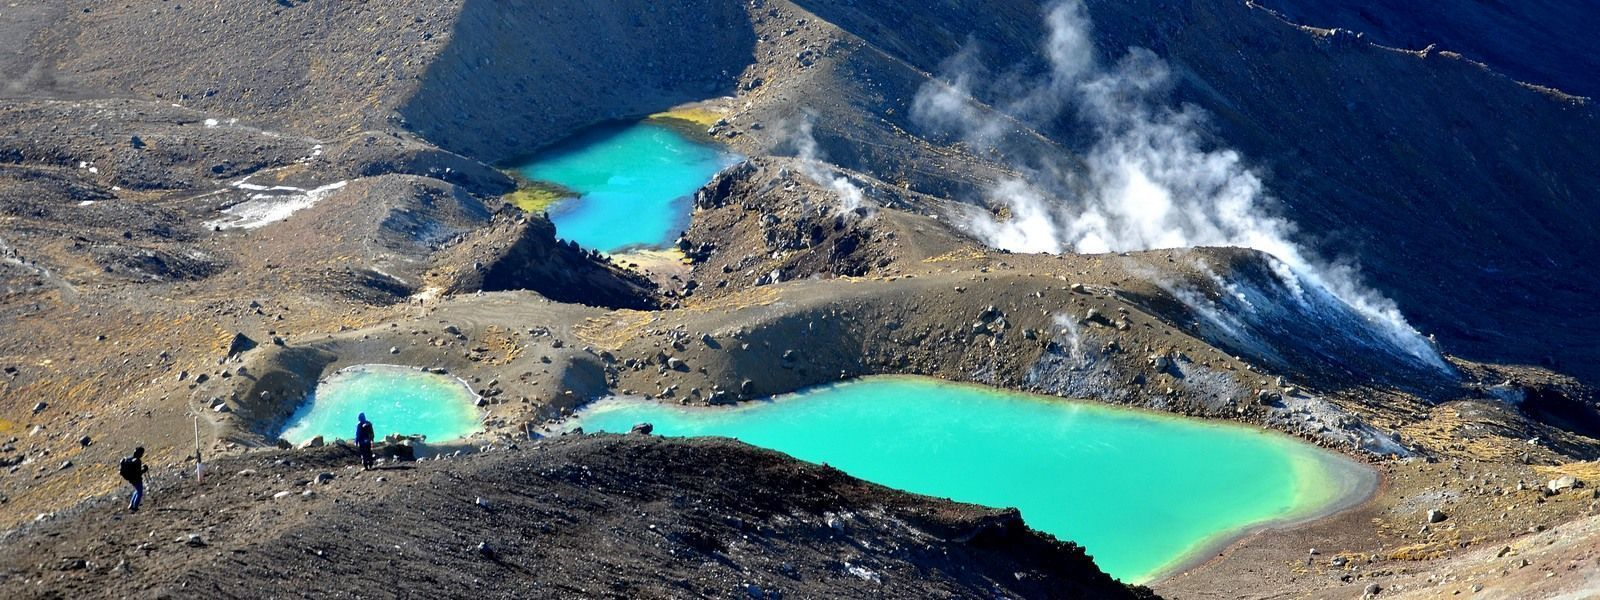 green pools tongariro | New Zealand